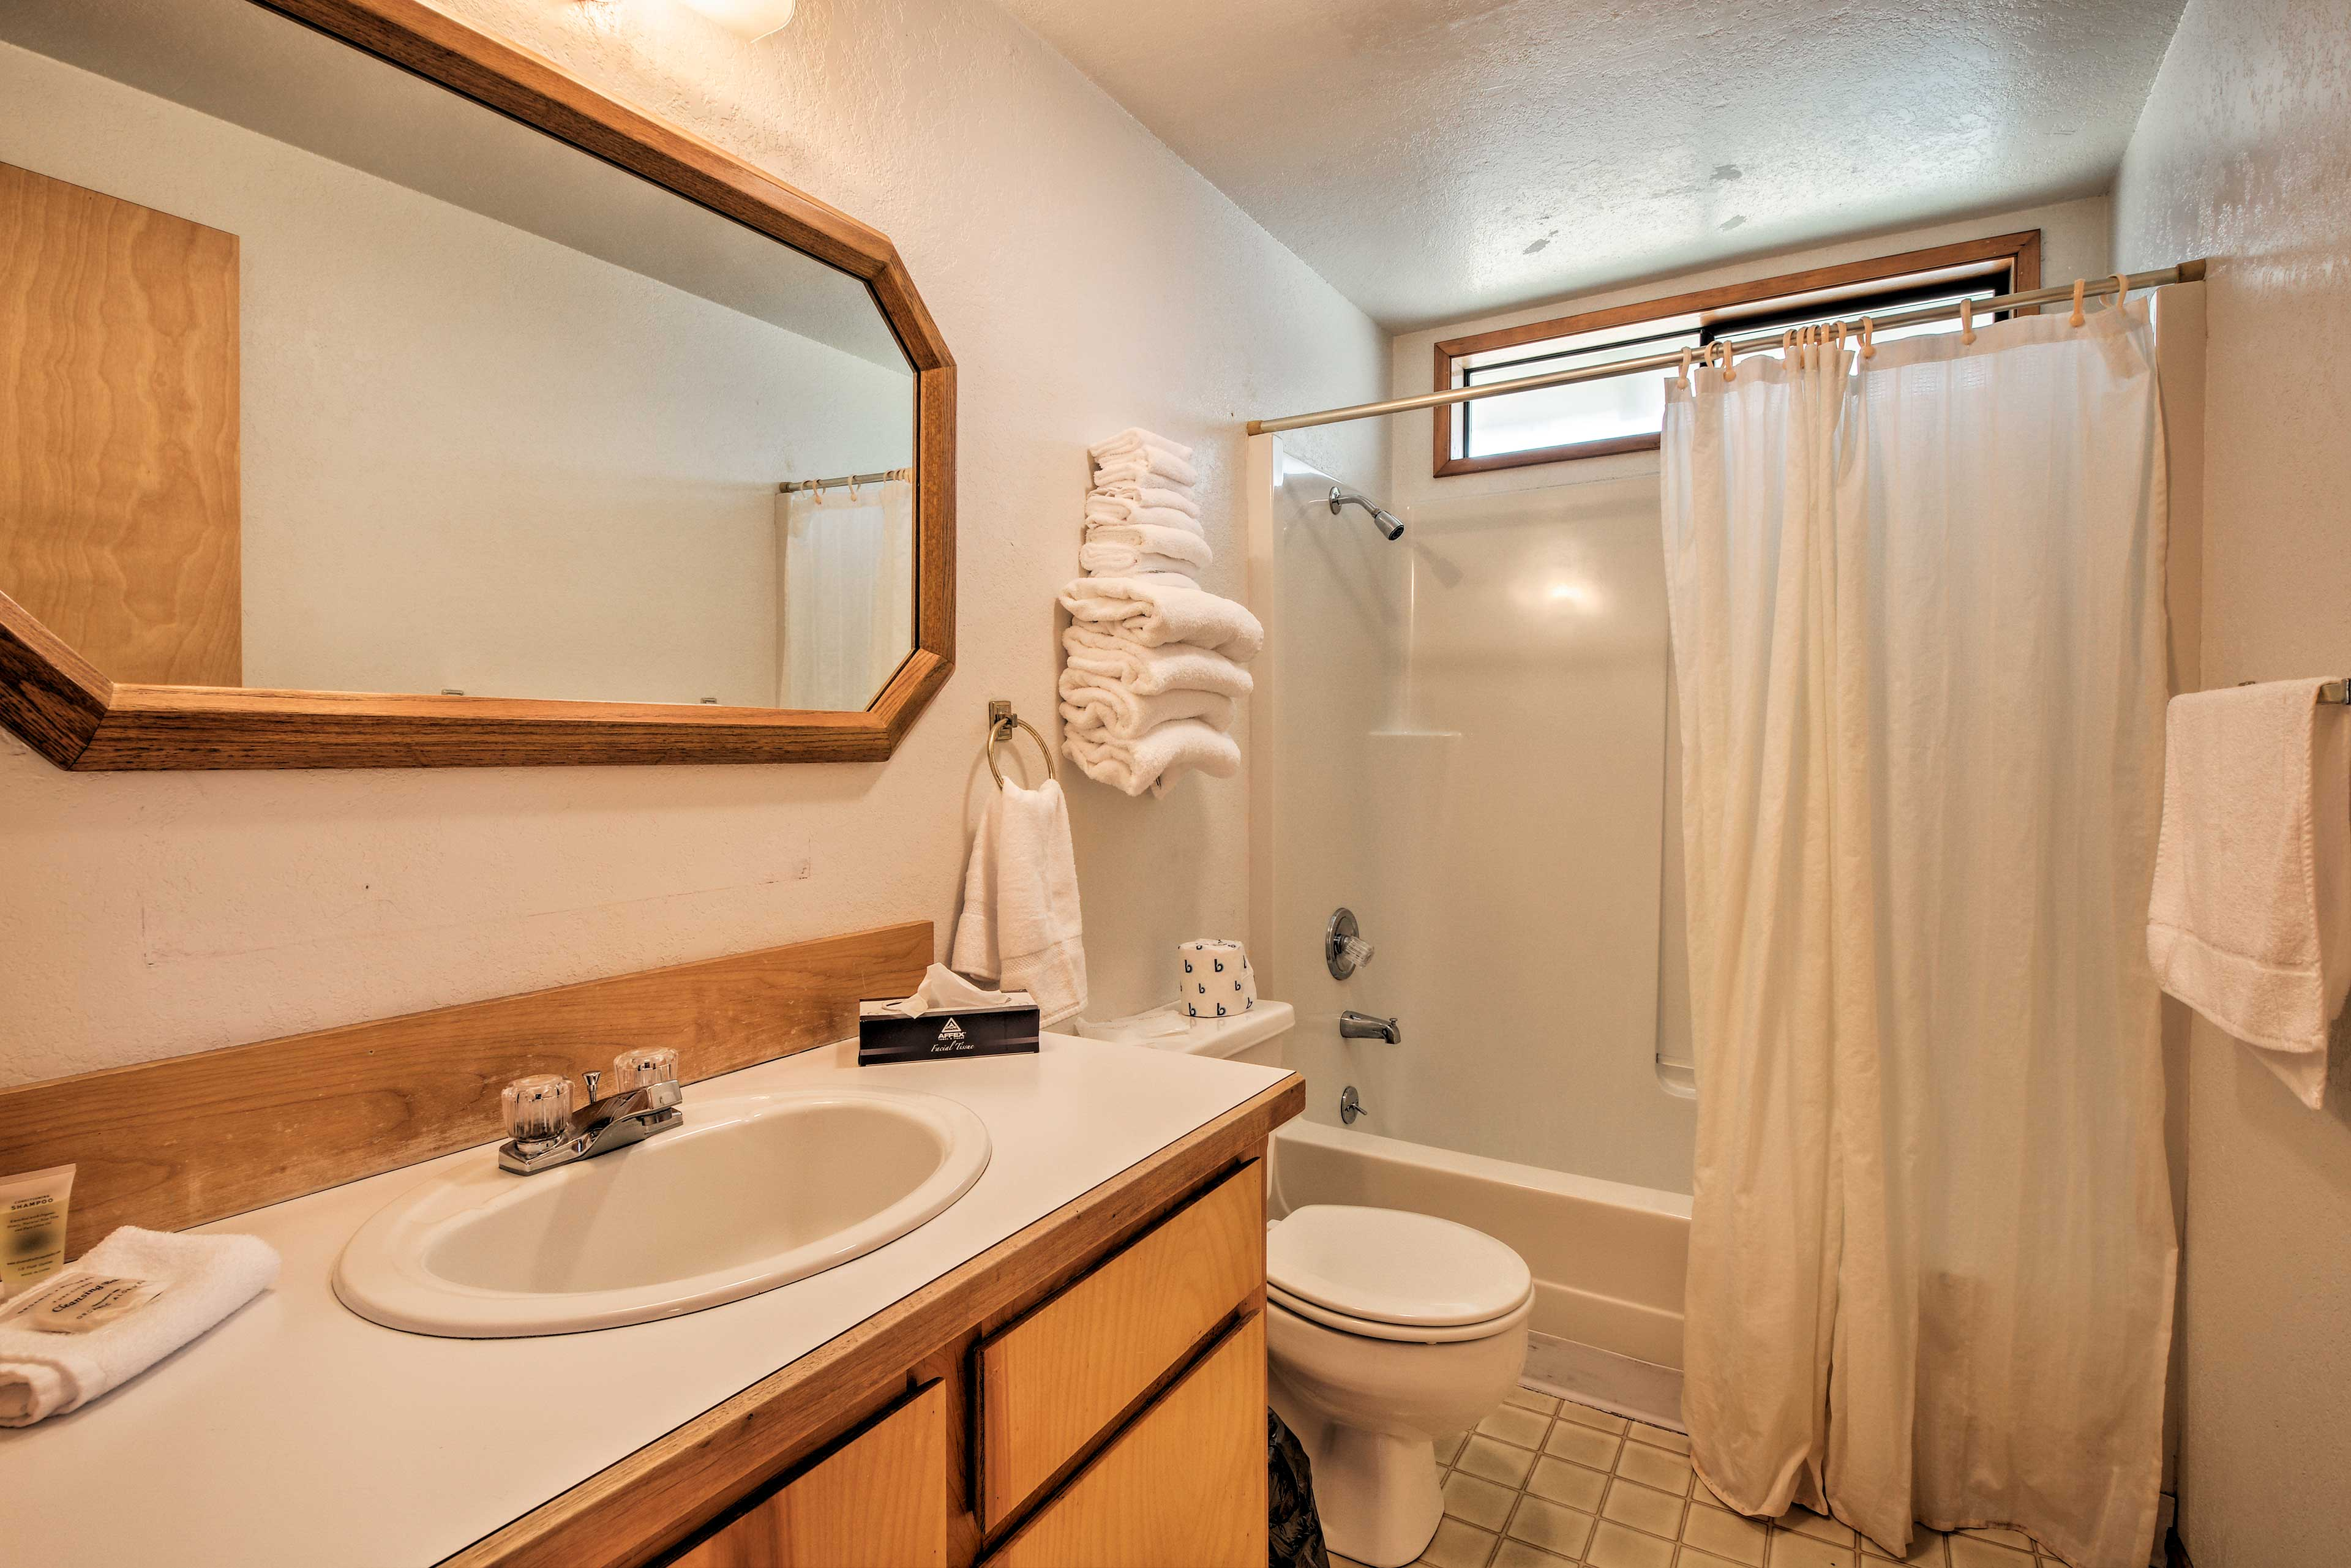 Towels and toiletries are provided at the cabin.